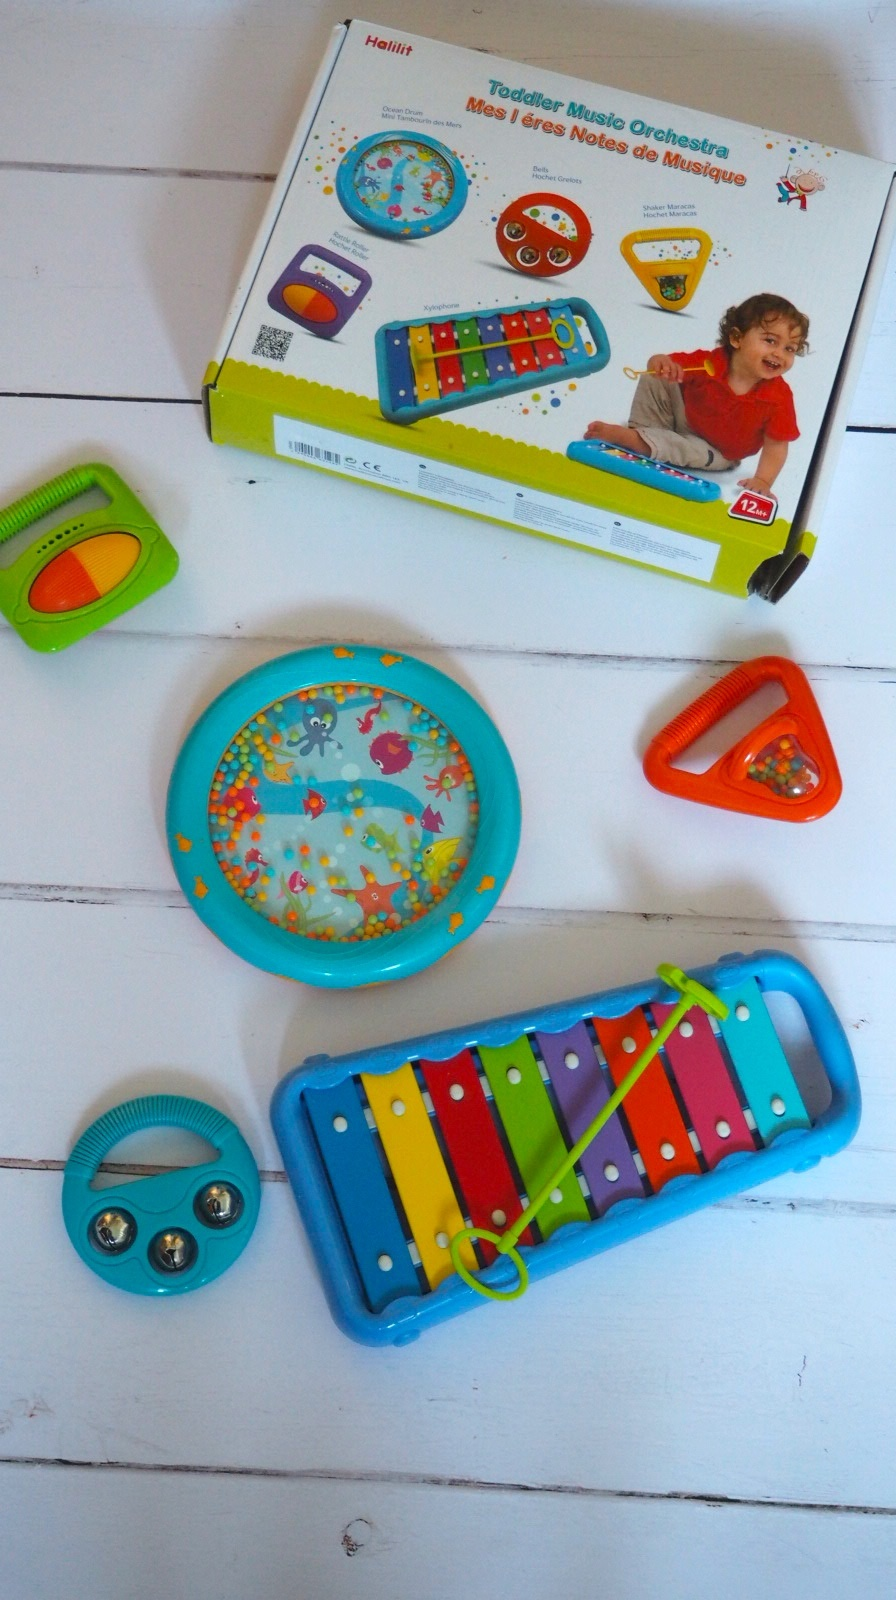 Halitat Toddler Music Orchestra Set